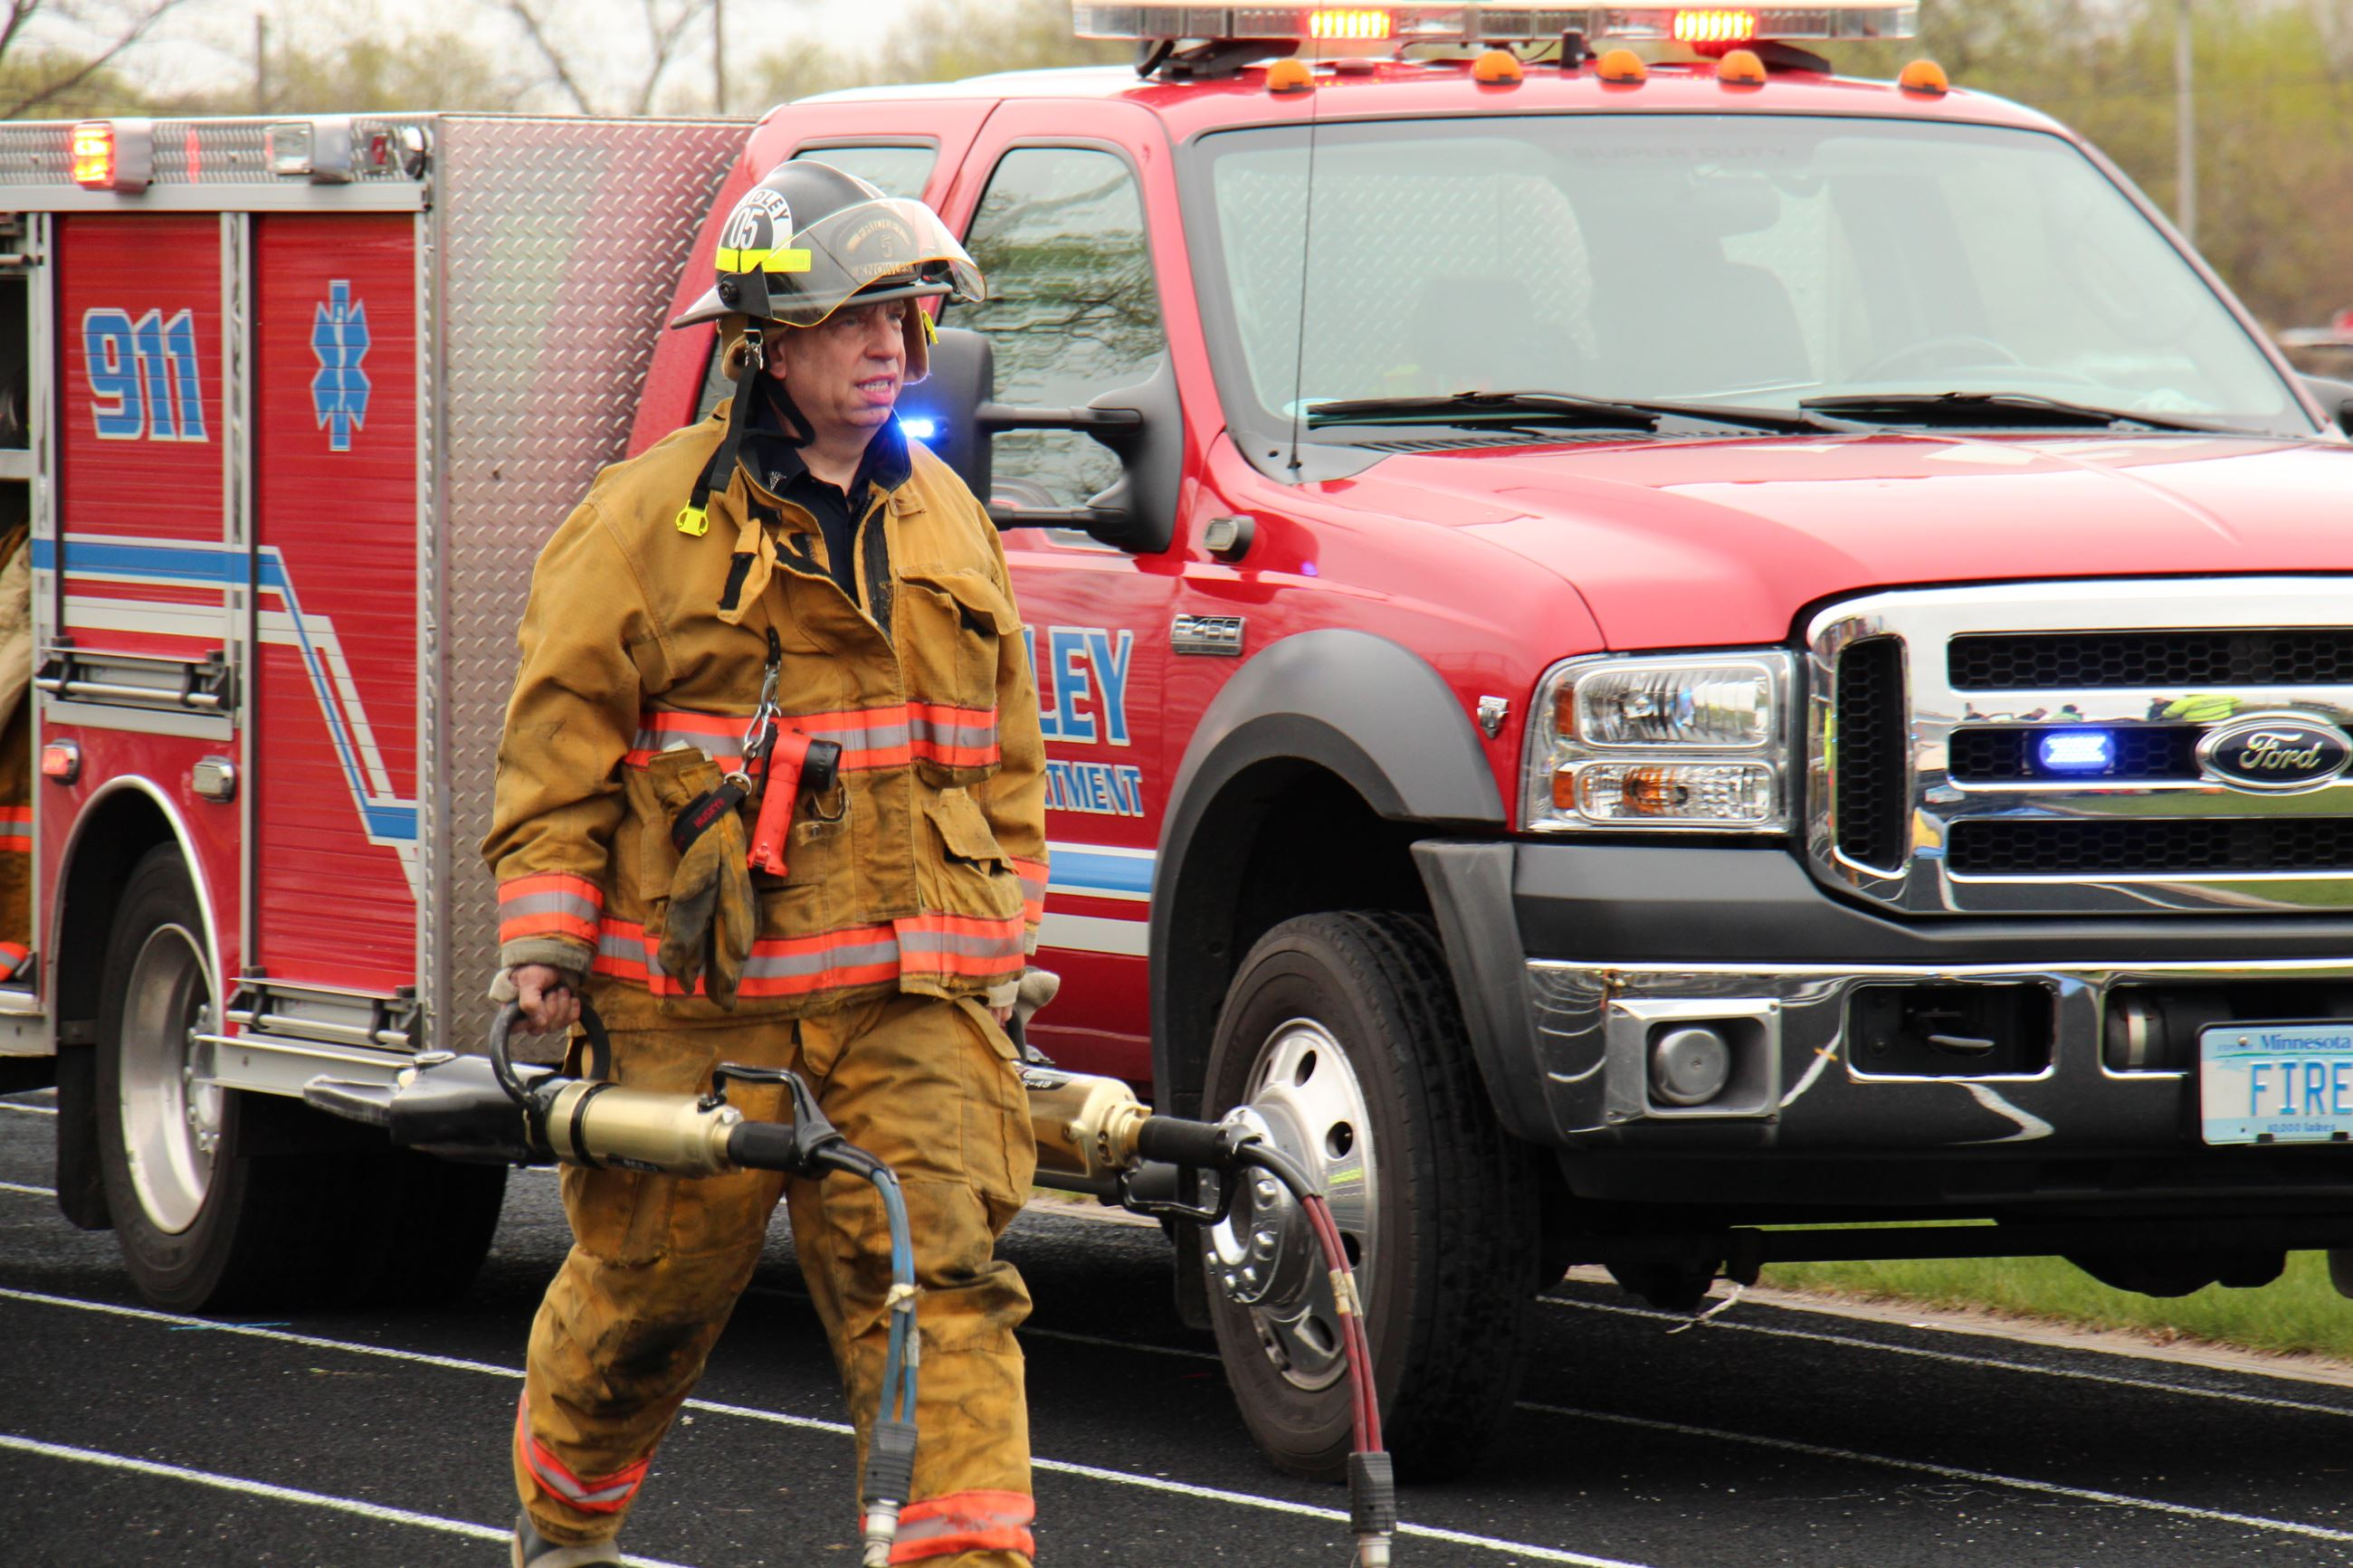 firefighter carrying jaws of life